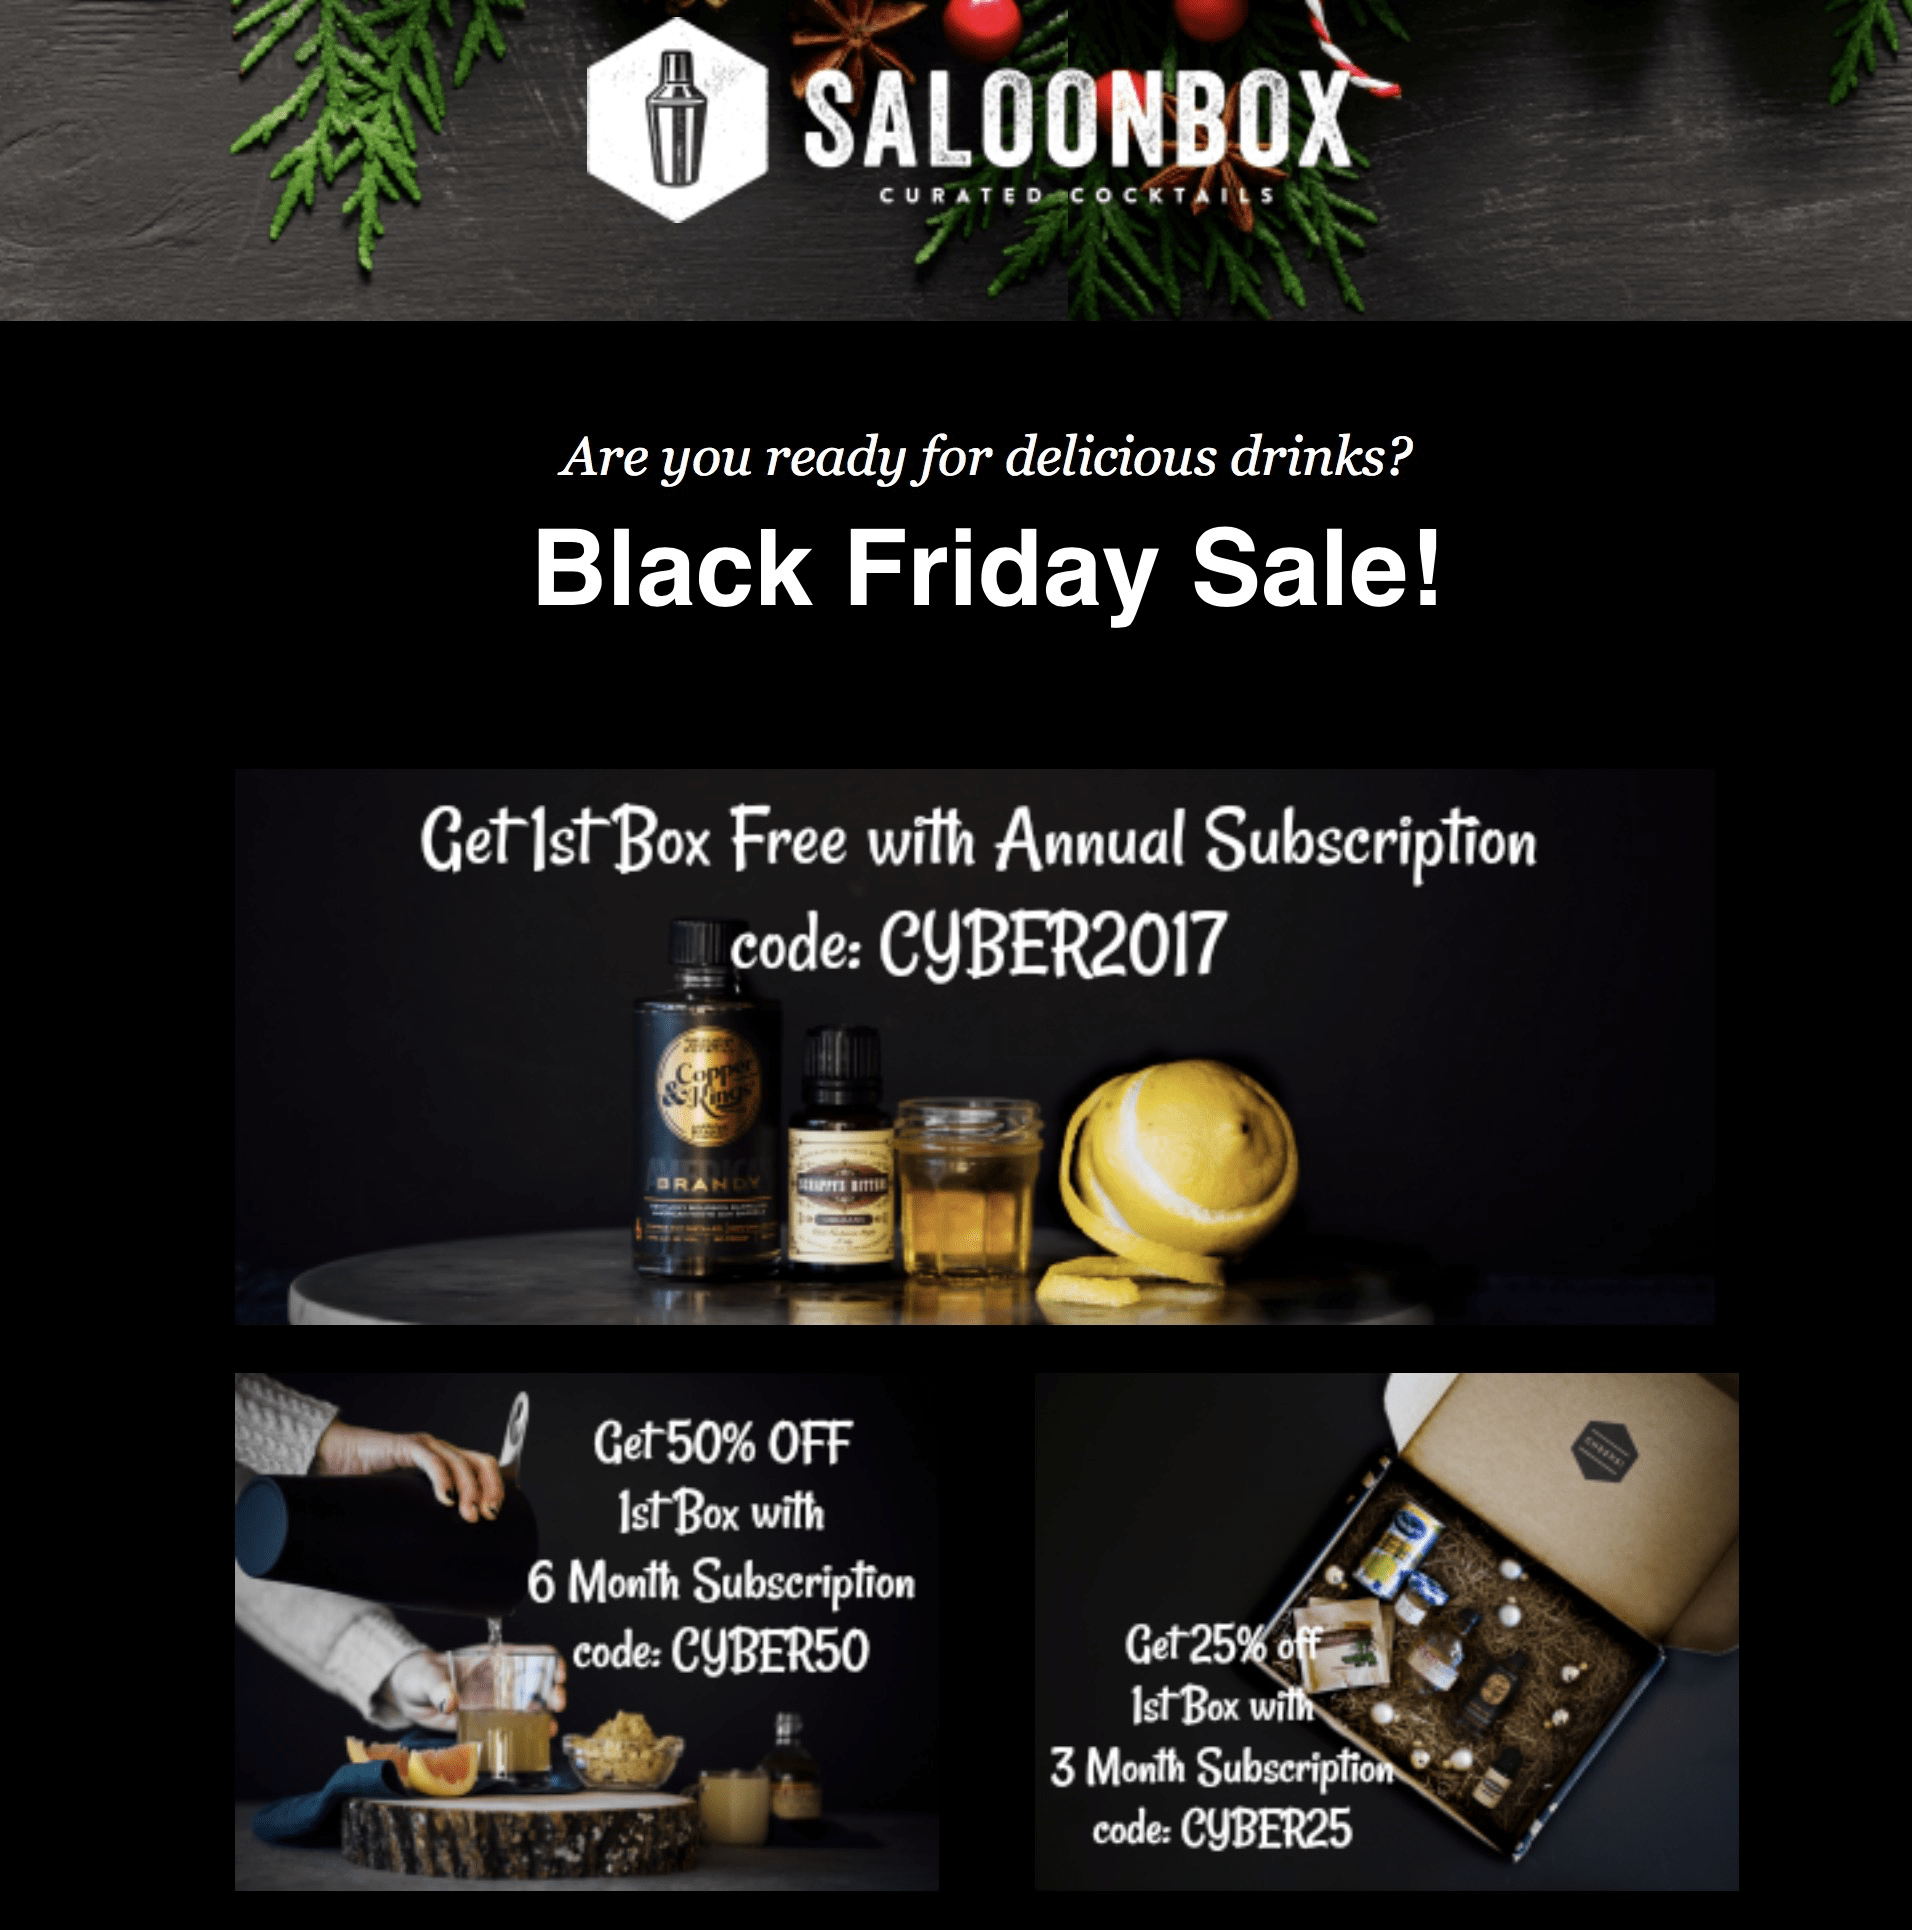 SaloonBox Cocktail Subscription Box Black Friday Deal! 50% Off First Month!